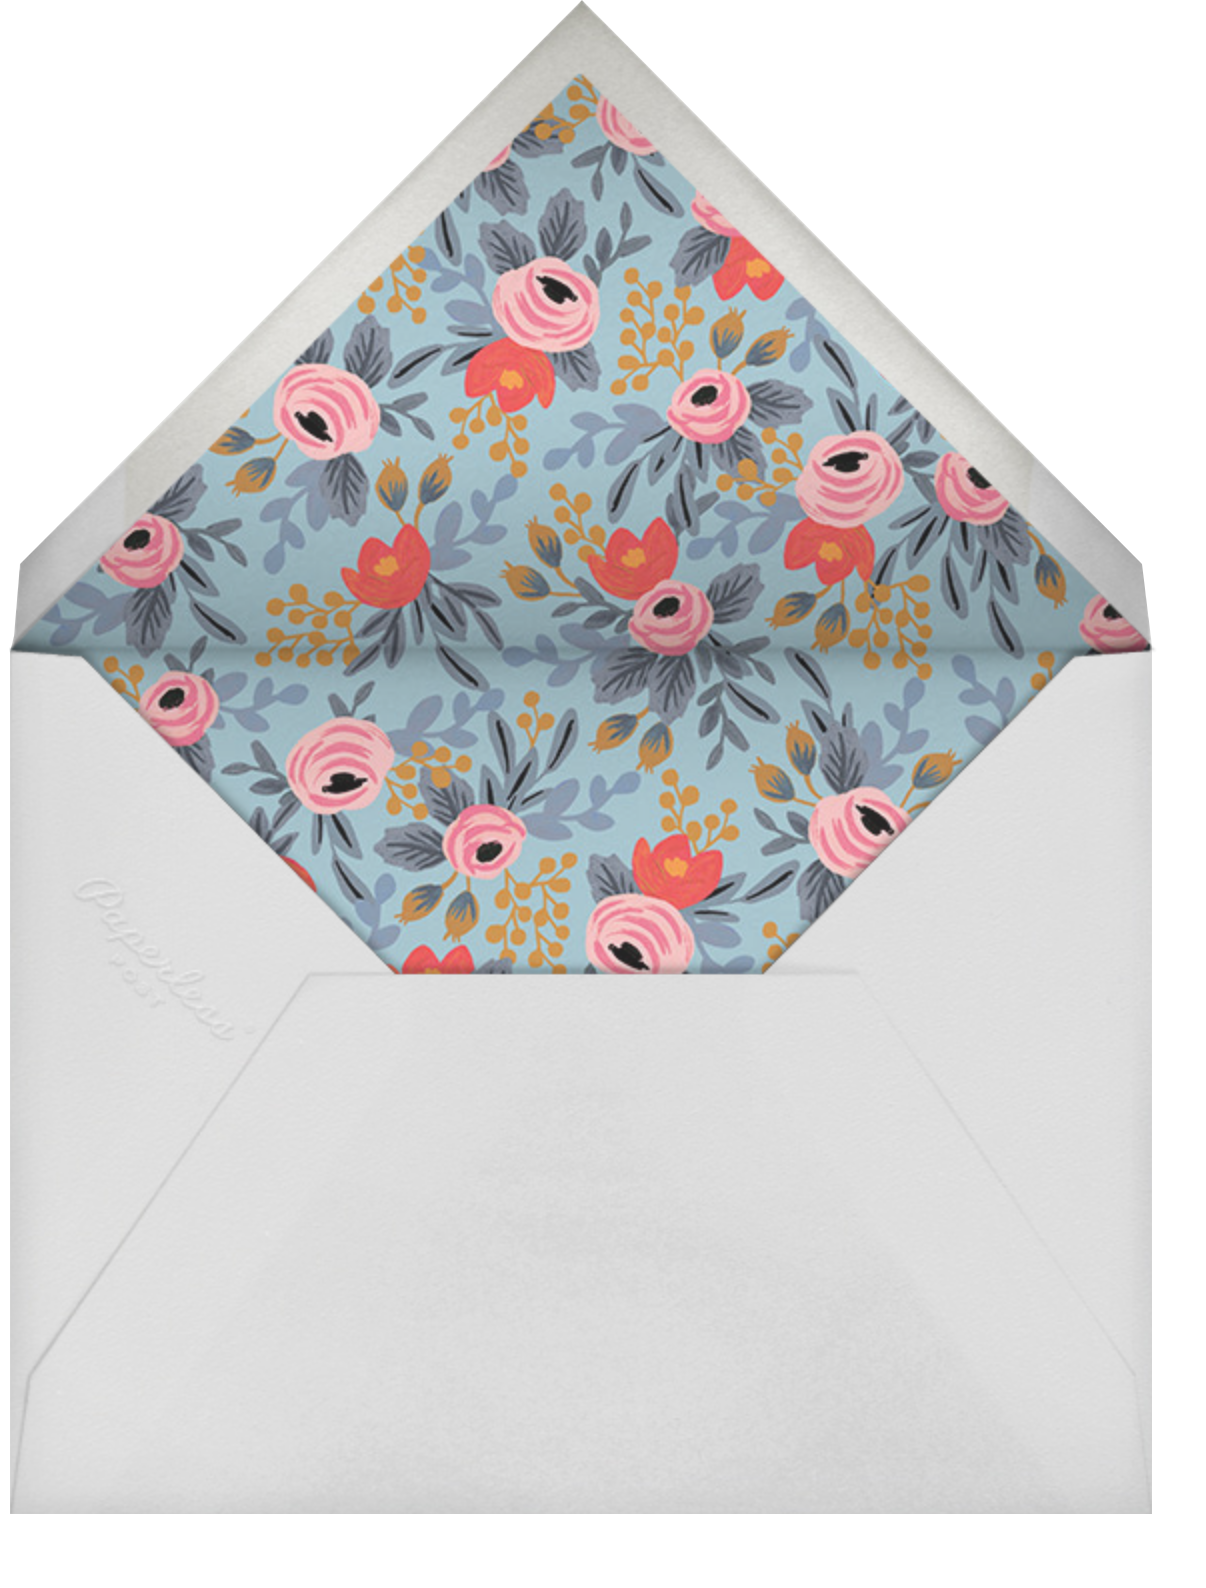 Year in Bloom (Landscape Photo) - White - Rifle Paper Co. - Graduation party - envelope back